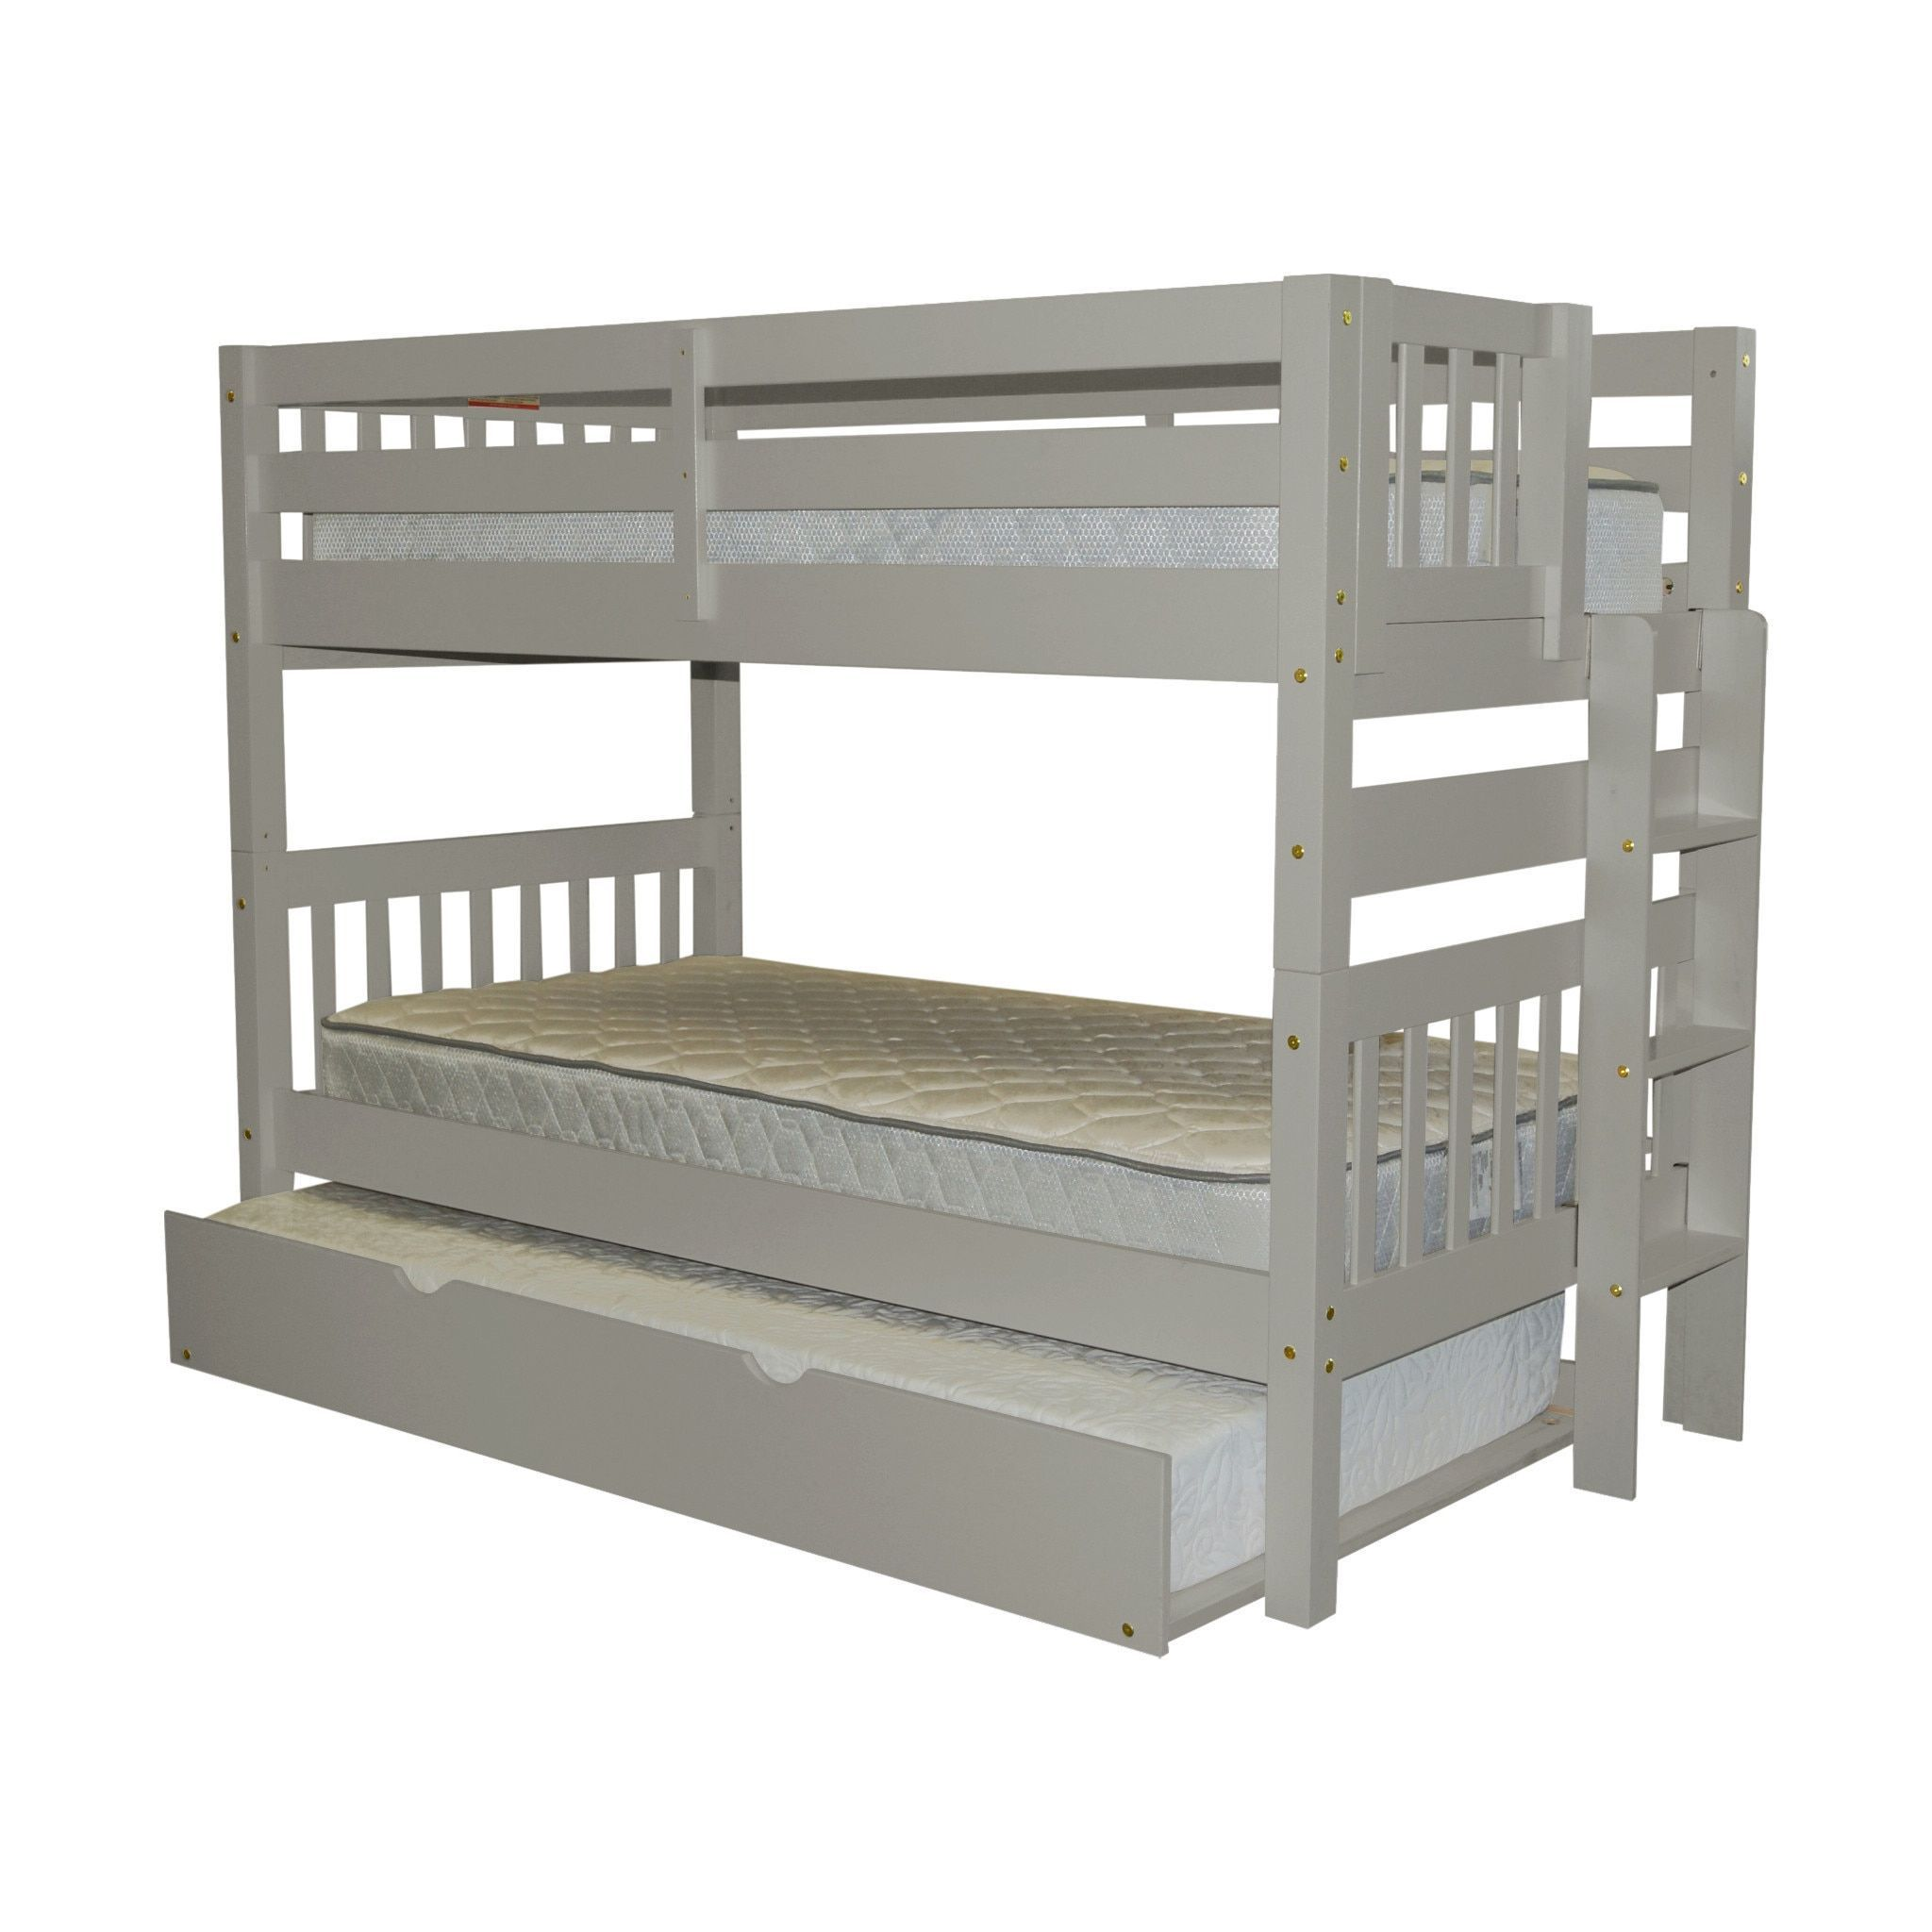 Bedz king bunk bed twin over twin with end ladder and a twin trundle